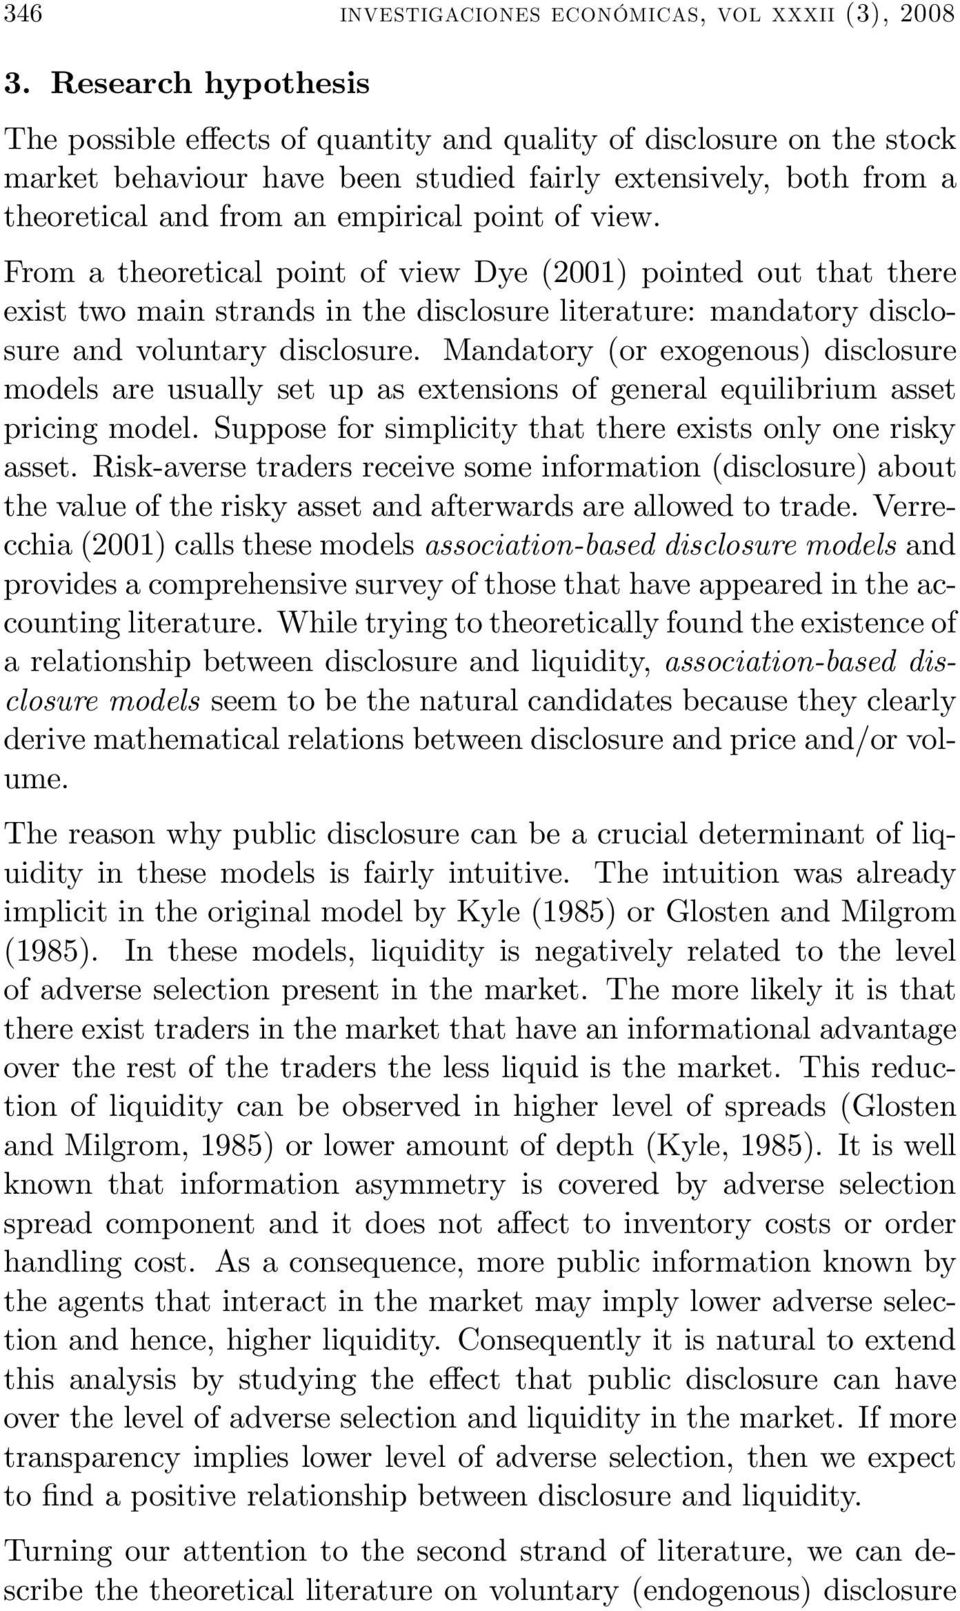 view. From a theoretical point of view Dye (2001) pointed out that there exist two main strands in the disclosure literature: mandatory disclosure and voluntary disclosure.